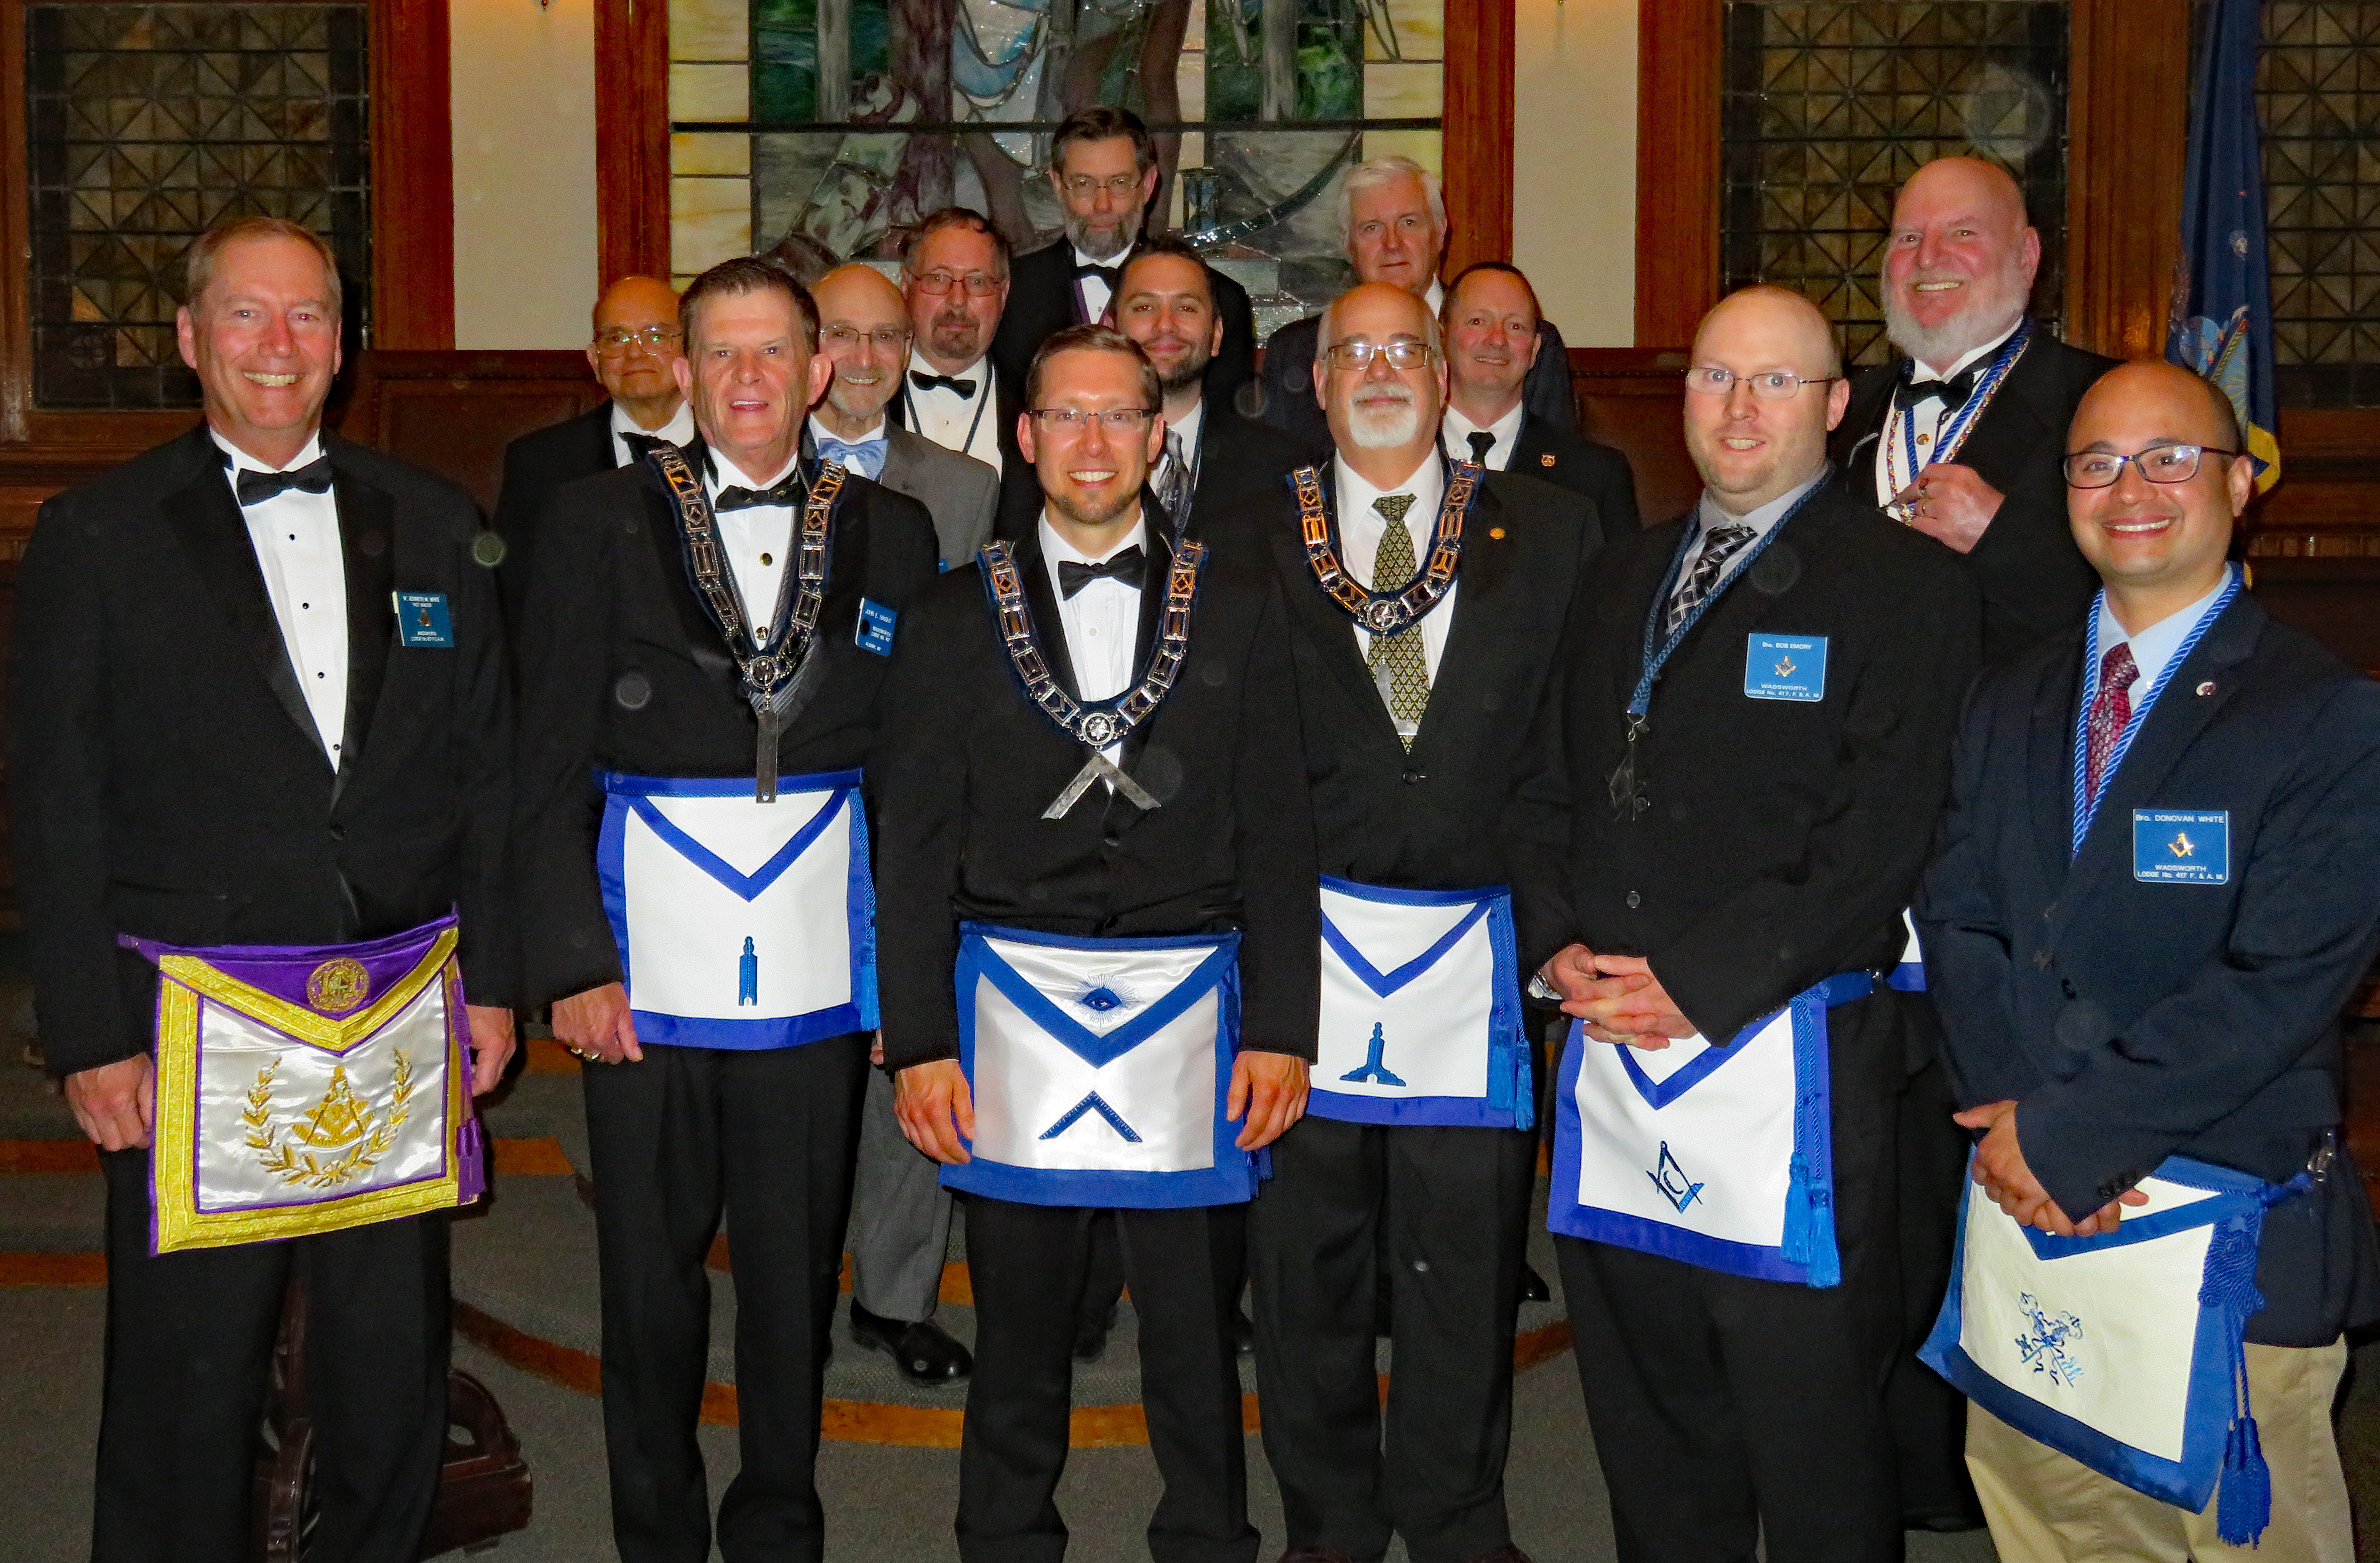 Officers of Wadsworth Lodge